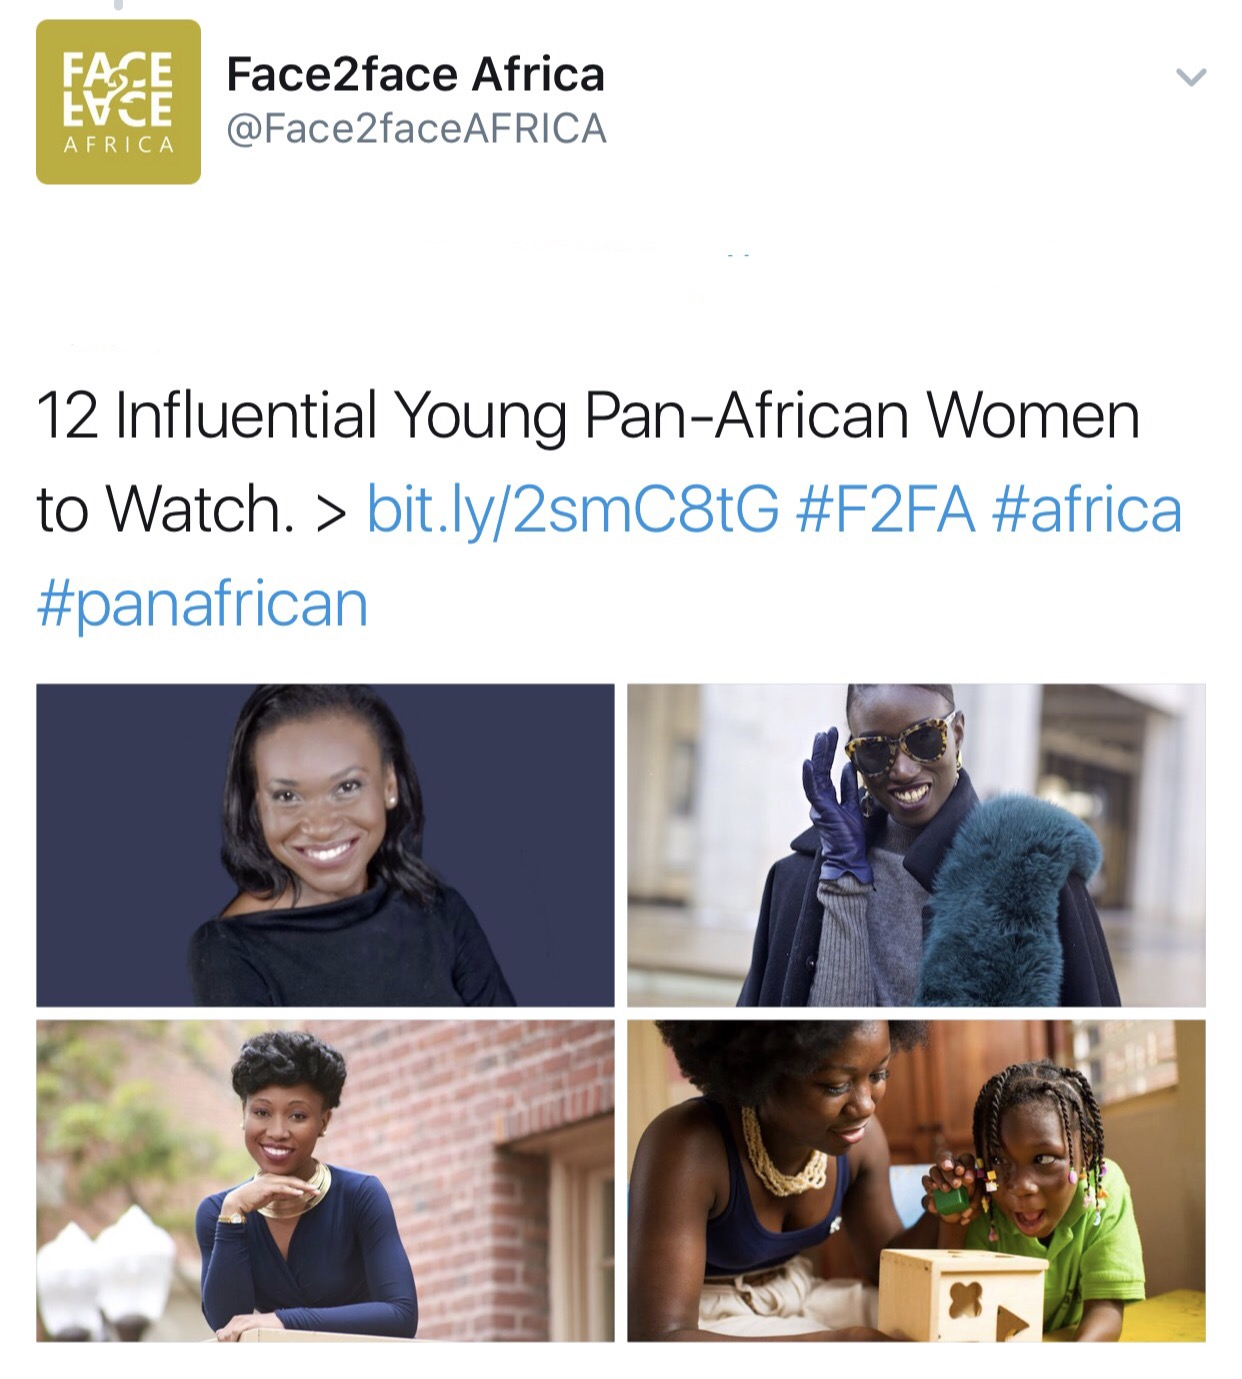 iloh_12 influential Pan-African women.jpg